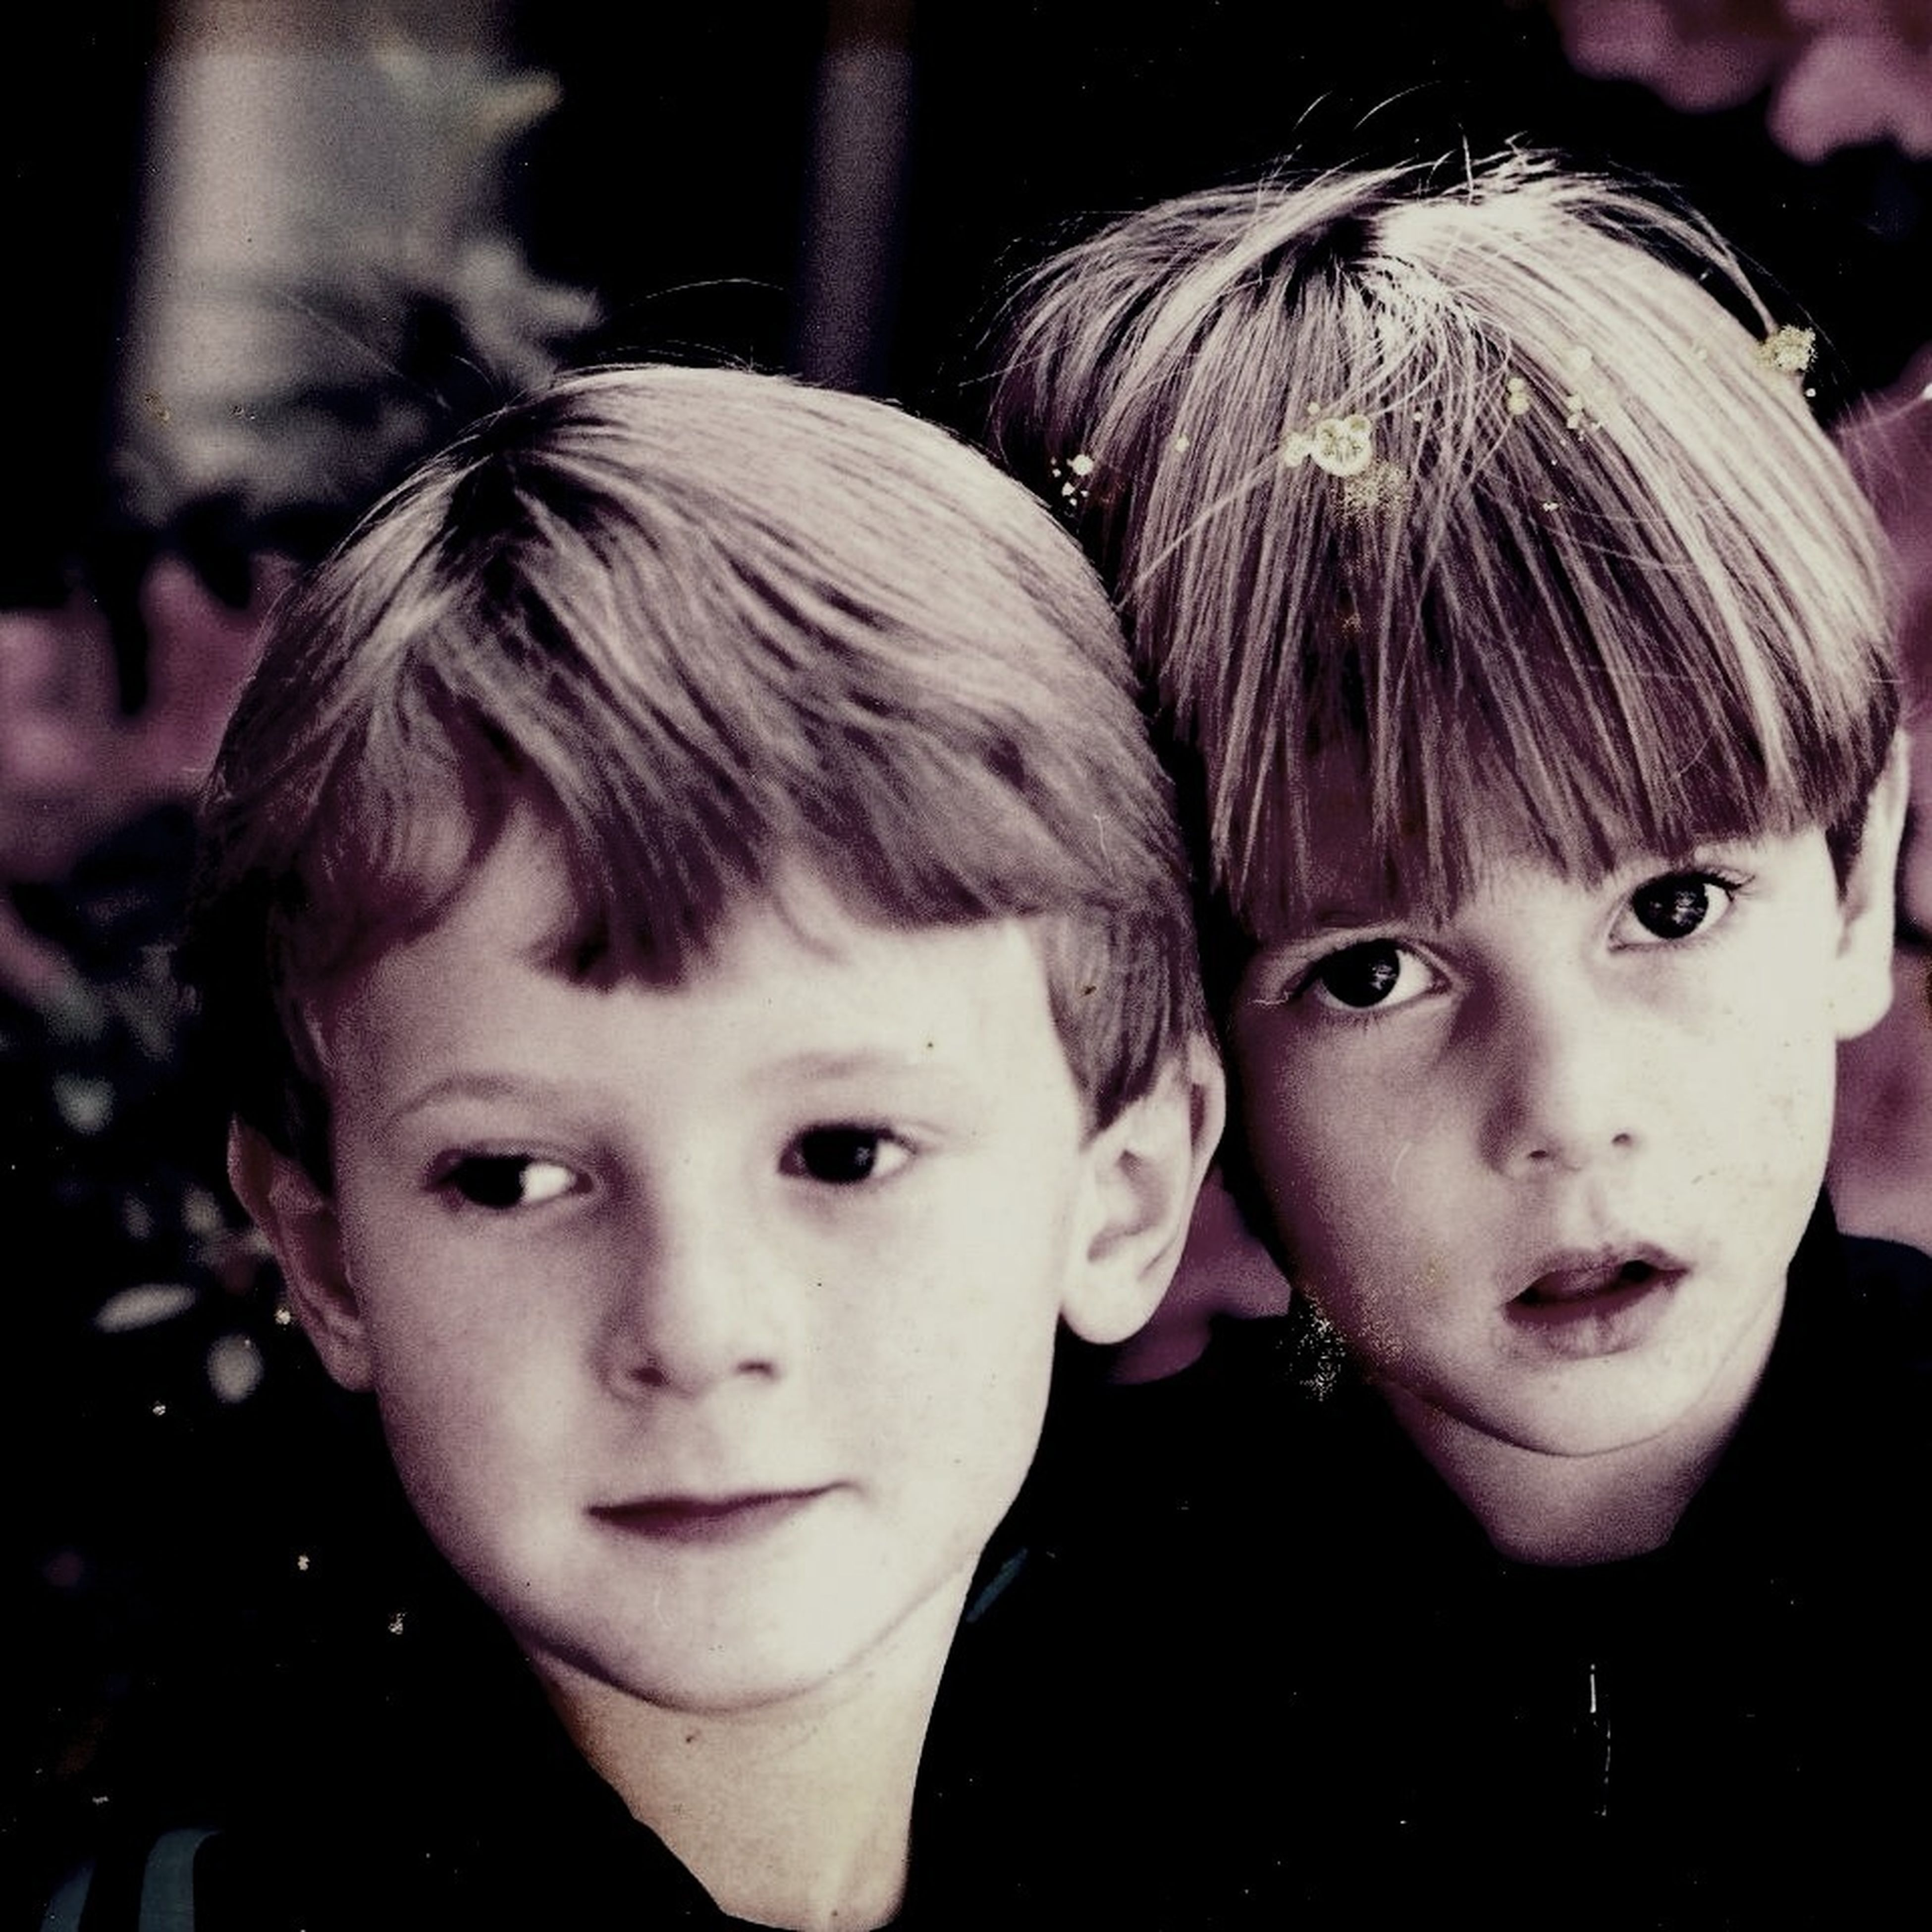 childhood, person, elementary age, headshot, innocence, boys, looking at camera, close-up, portrait, girls, lifestyles, cute, leisure activity, focus on foreground, front view, happiness, smiling, togetherness